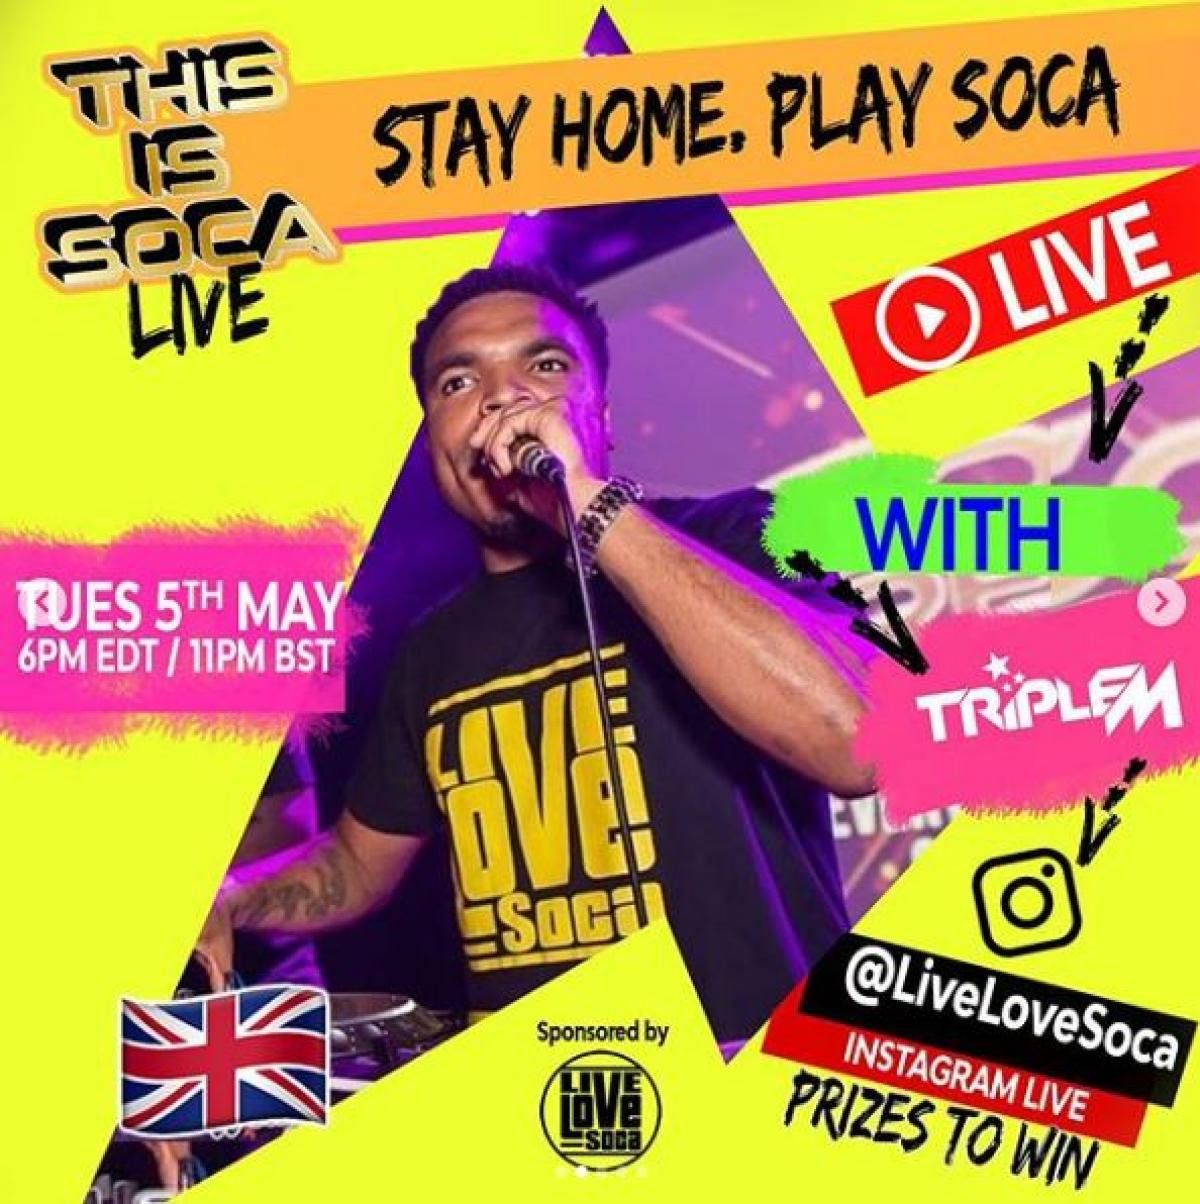 This Is Soca Live flyer or graphic.